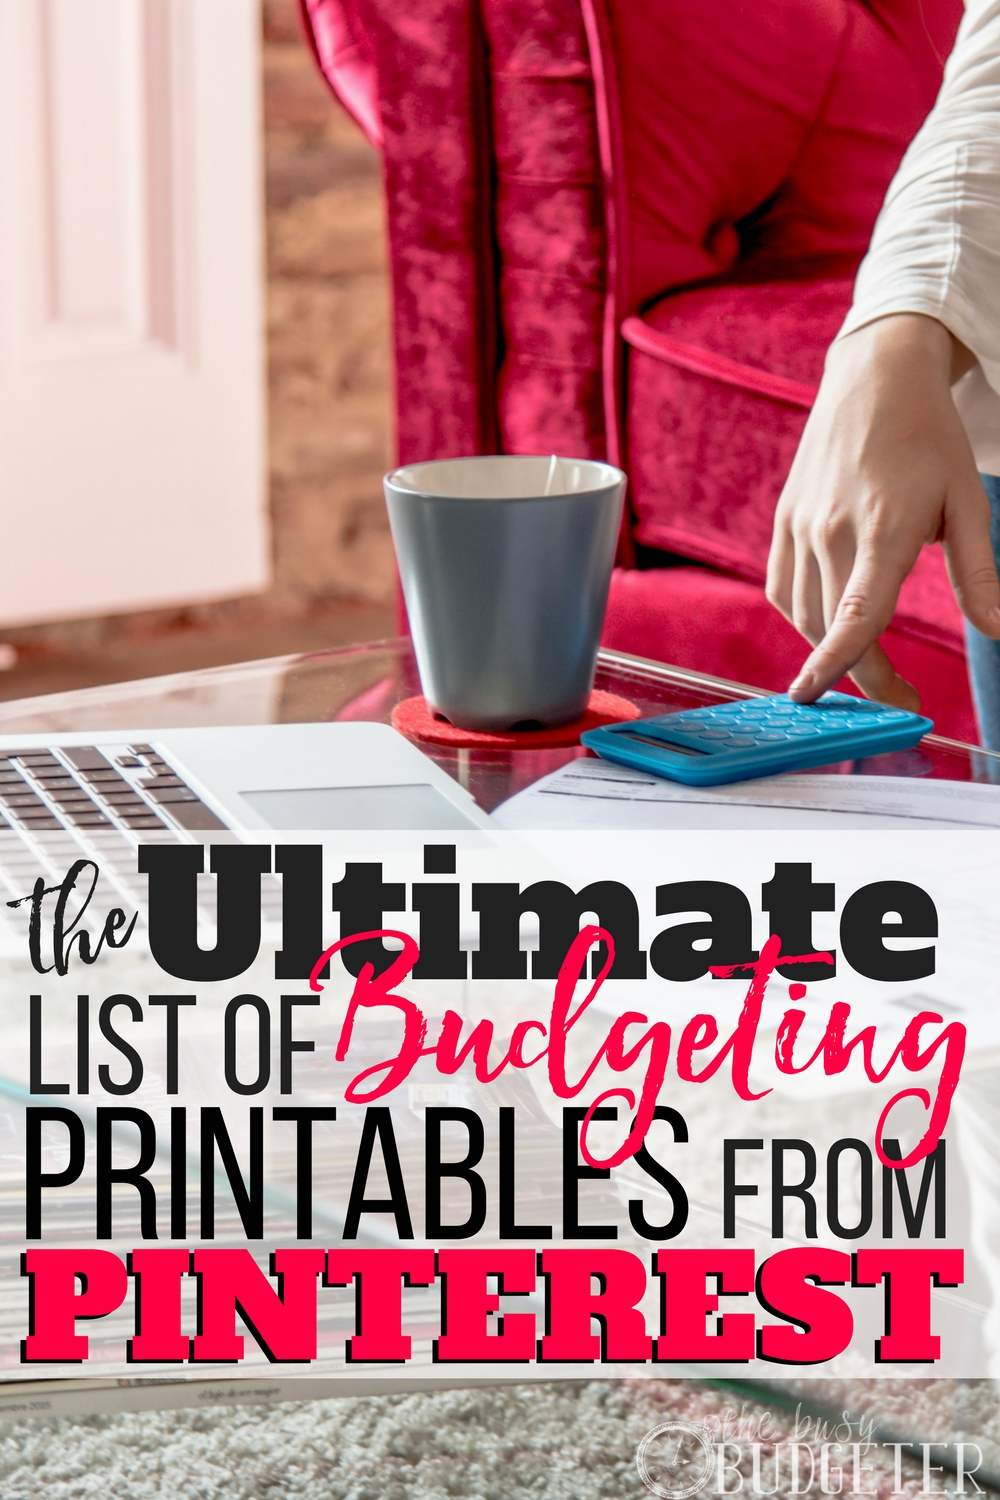 There are SO many budgeting printables on Pinterest, I didn't know where to start. Then I found this ultimate list of budgeting printables!! It's amazing - it includes free printables, cheap printables, and SO many different designs. Saving this article so I can look back for all of my different budgeting needs.